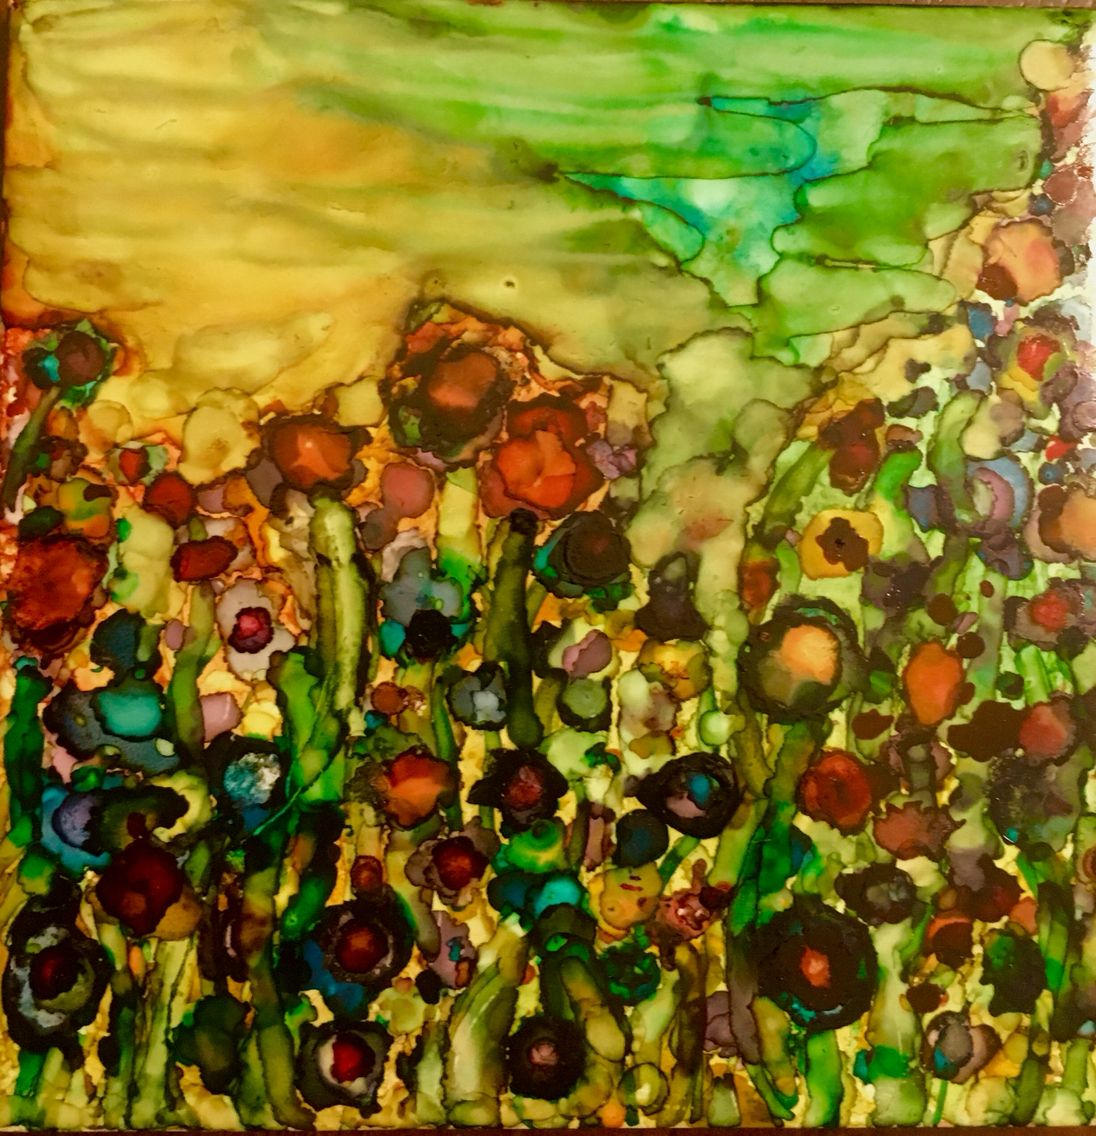 Recycled ceramic tile and alcohol ink wildflowers on a hillside recycled ceramic tile and alcohol ink wildflowers on a hillside dailygadgetfo Choice Image